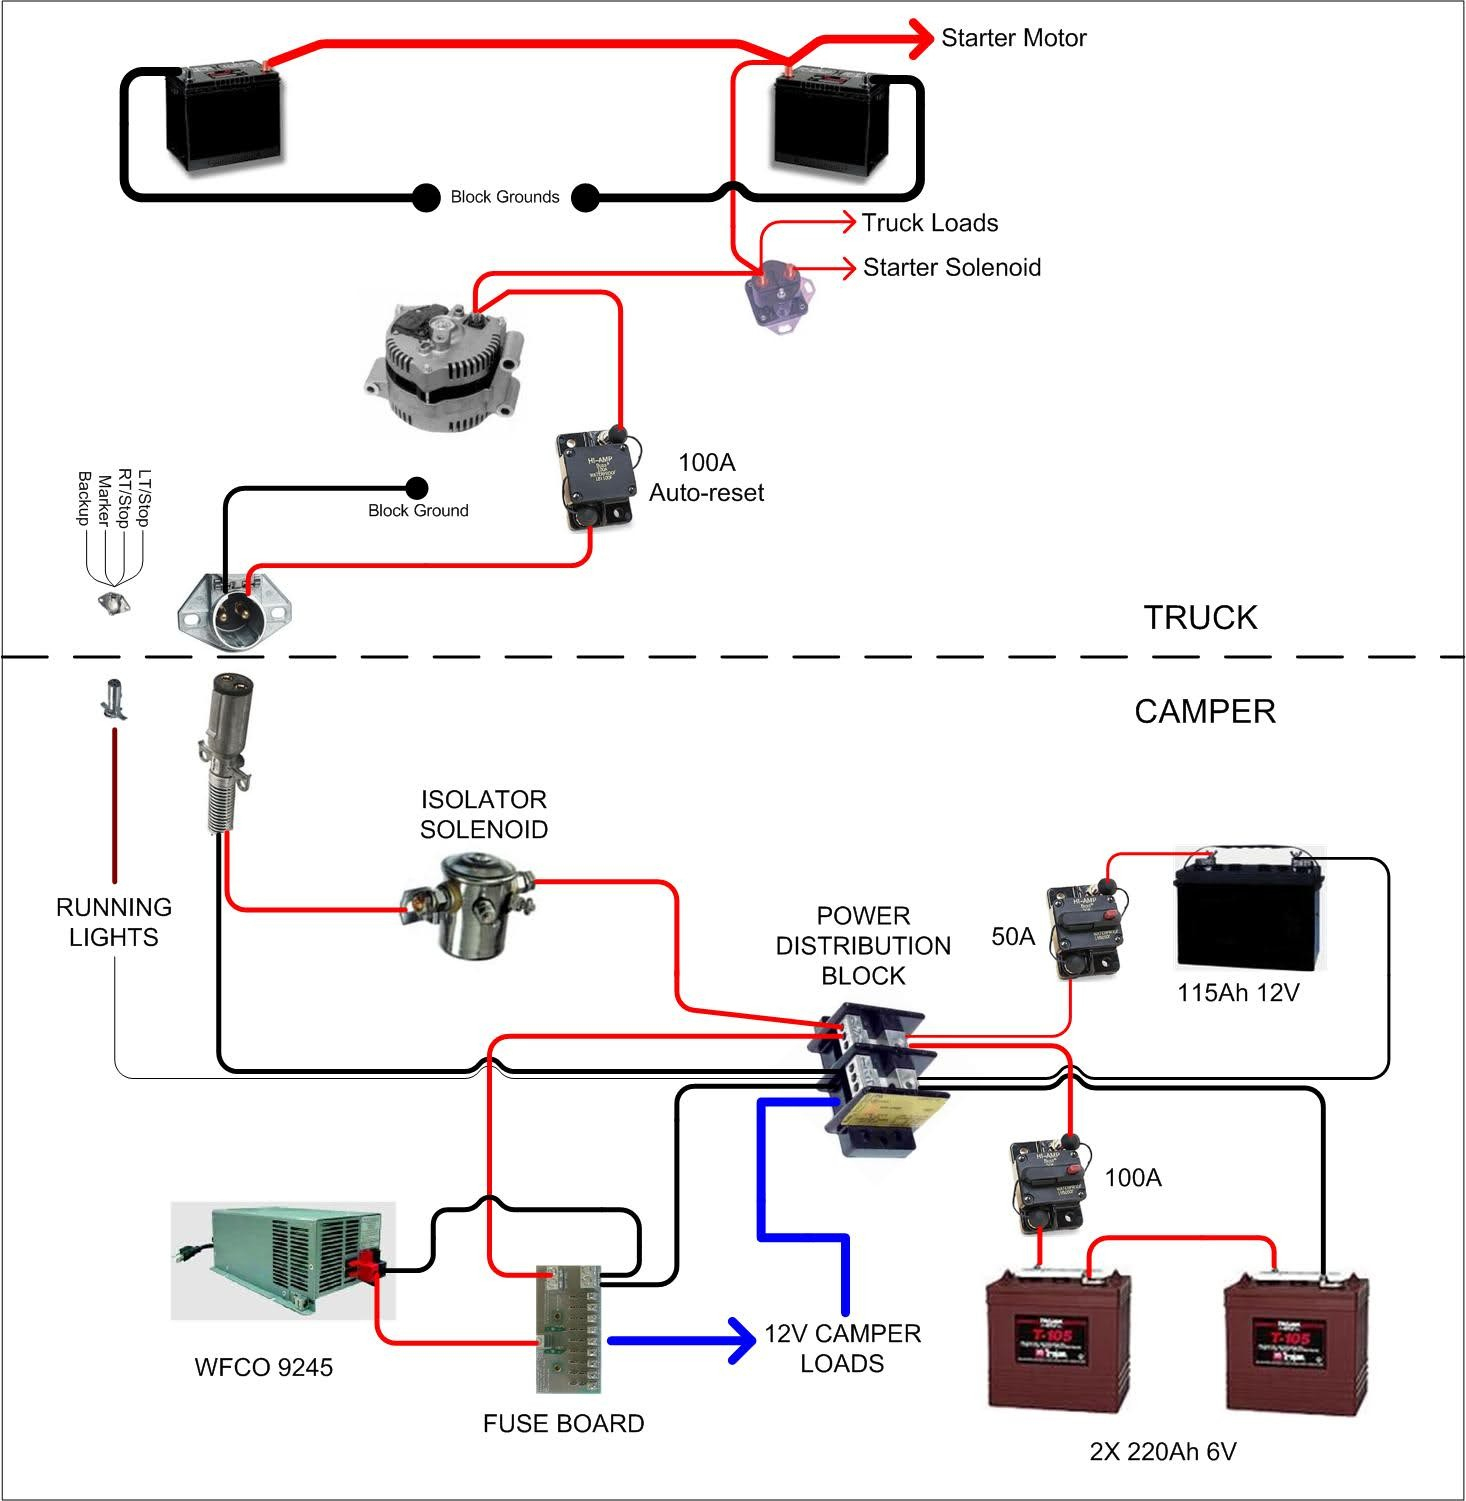 Super Wells Cargo Trailer Wiring Diagram Together With Electric Winch Wiring Digital Resources Indicompassionincorg